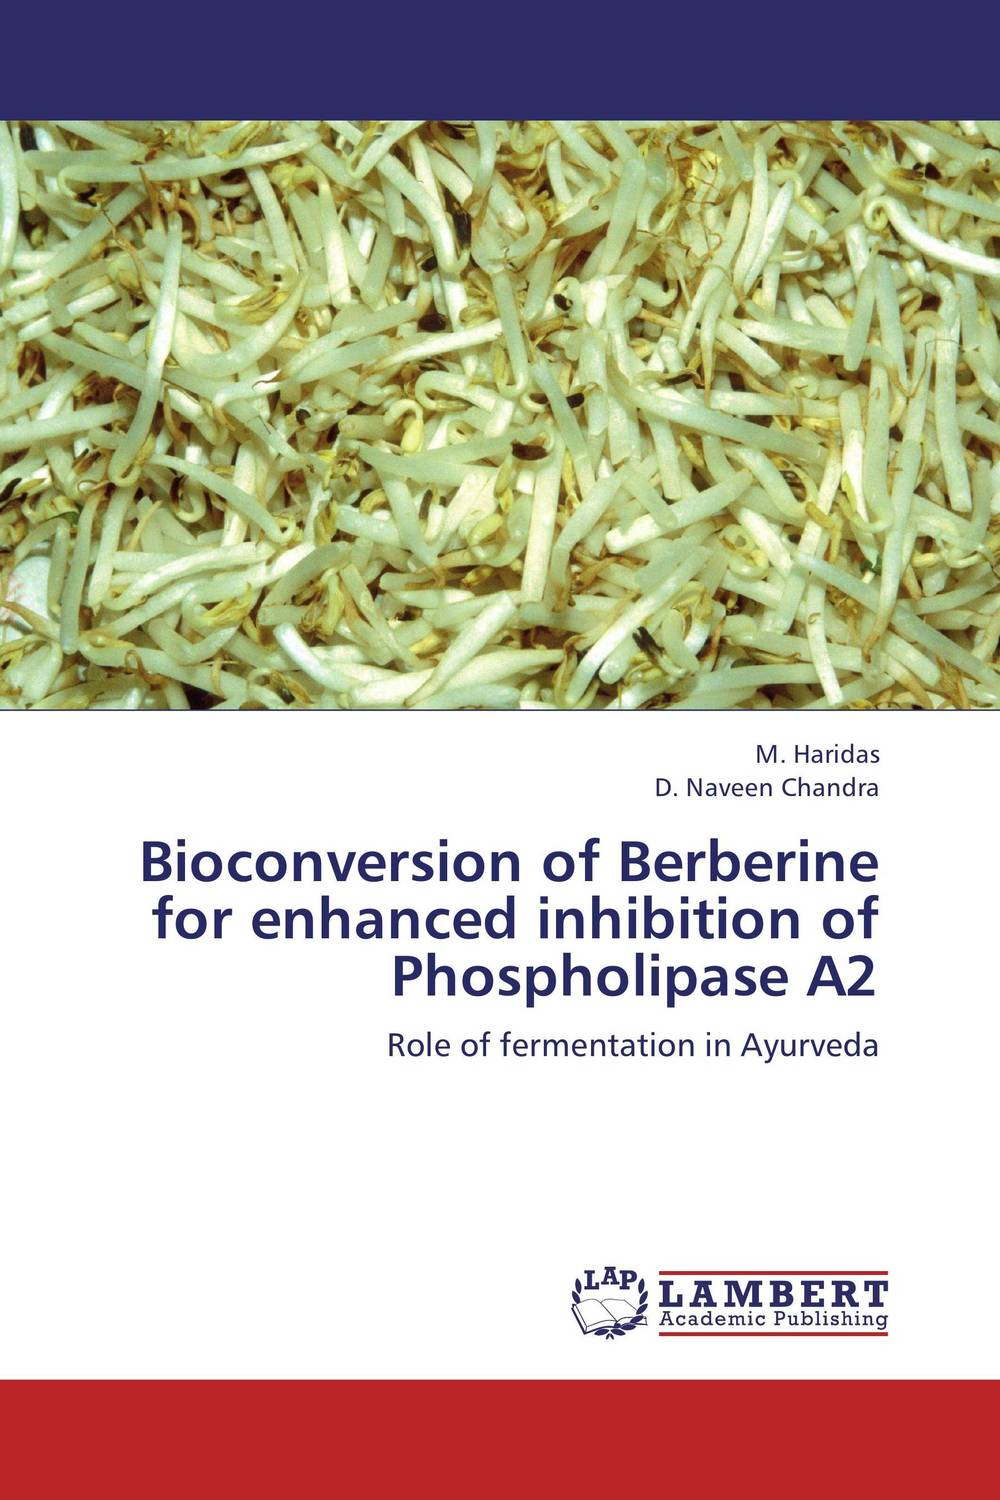 Bioconversion of Berberine for enhanced inhibition of Phospholipase A2 adding value to the citrus pulp by enzyme biotechnology production